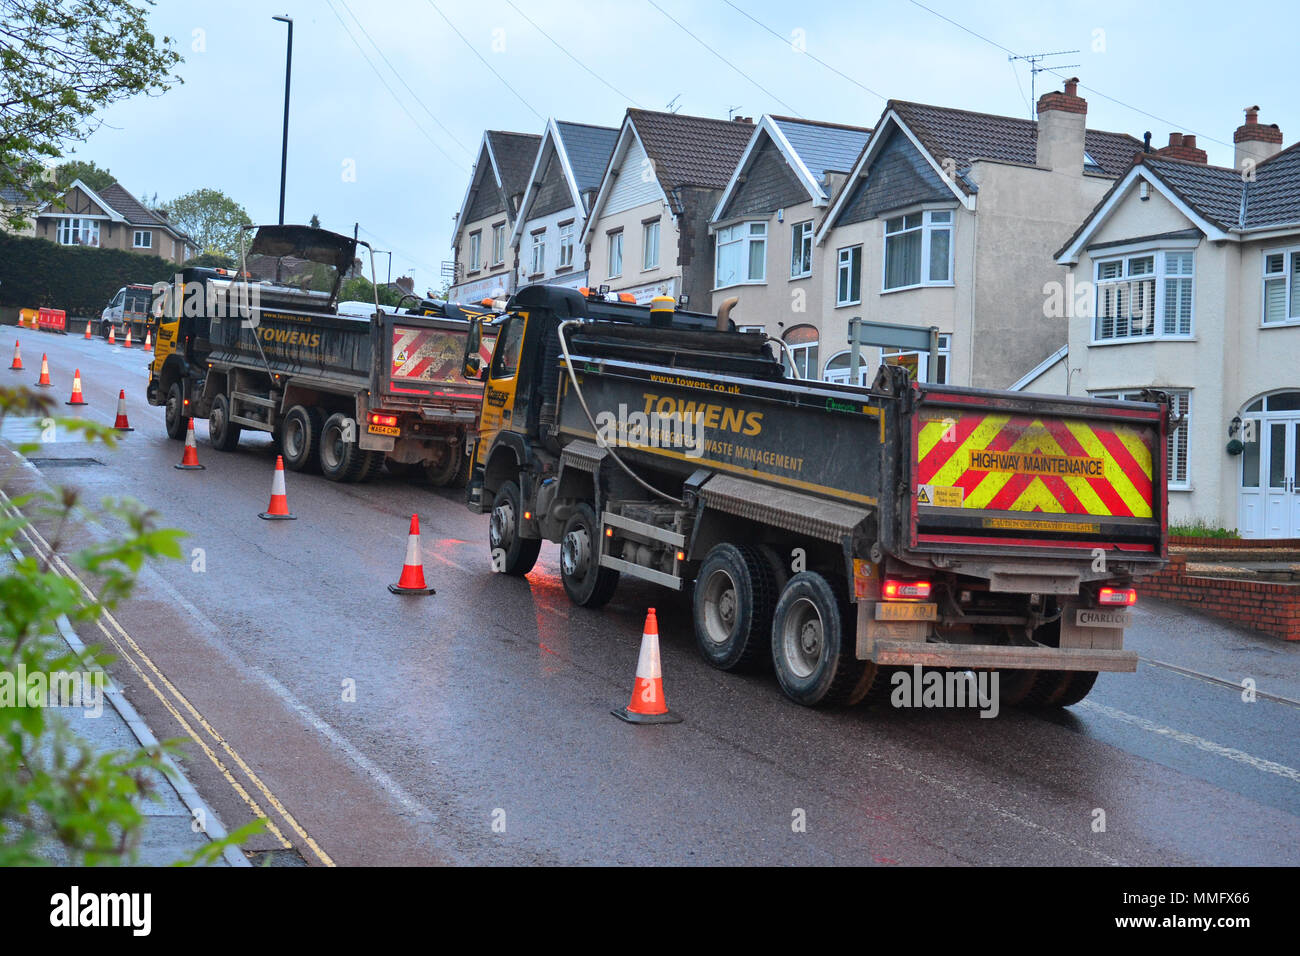 Bristol, UK. 11th May 2018. Workmen seen carrying out overnight resurfacing of the Wells Road A37, outbound Broadfield Road to Airport Road on Friday 11th may .Part of a larger on going scheme. Bristol City Council and North East Somerset Council made a joint bid to the Department of Transport for the Local Highways Maintenance Challenge Fund. Total amount awarded which includes a contribution from each authority is £6.4m Proposed carriageway reconstruction A4 and A4174 Corridors. Robert Timoney/Alamy/Live/News Stock Photo